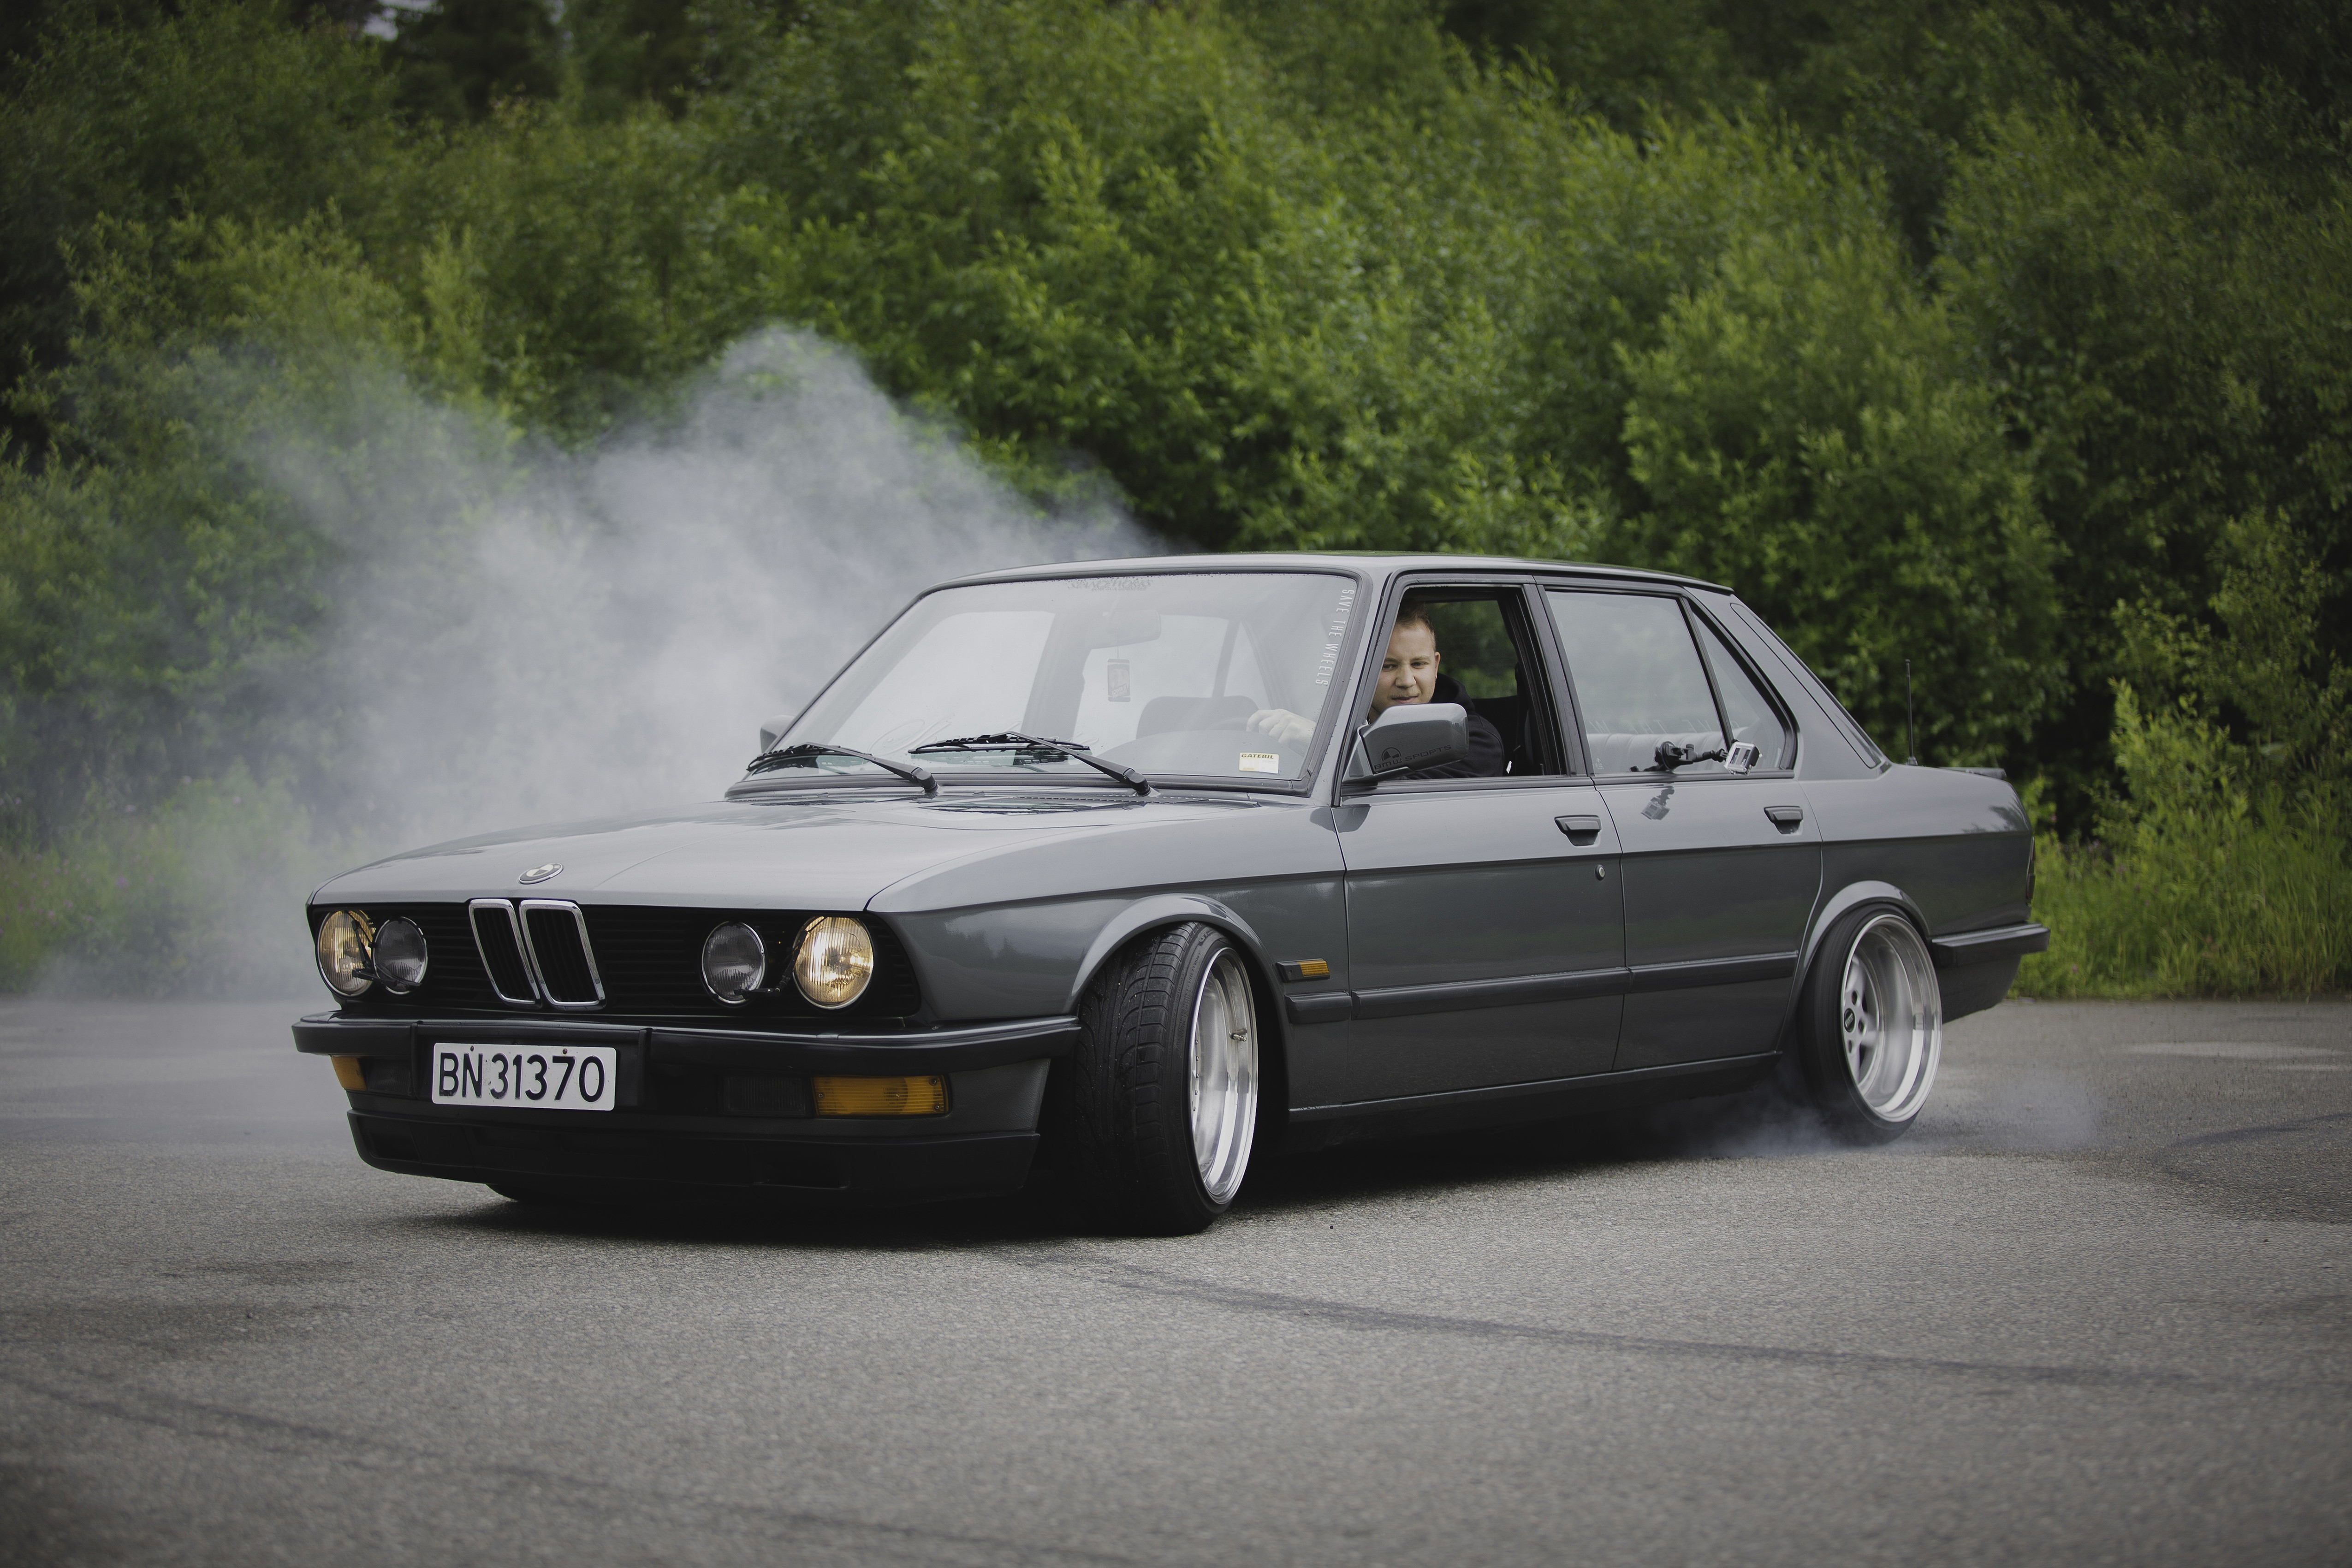 Download wallpaper for 1920x1080 resolution BMW E28 Stance 5100x3400